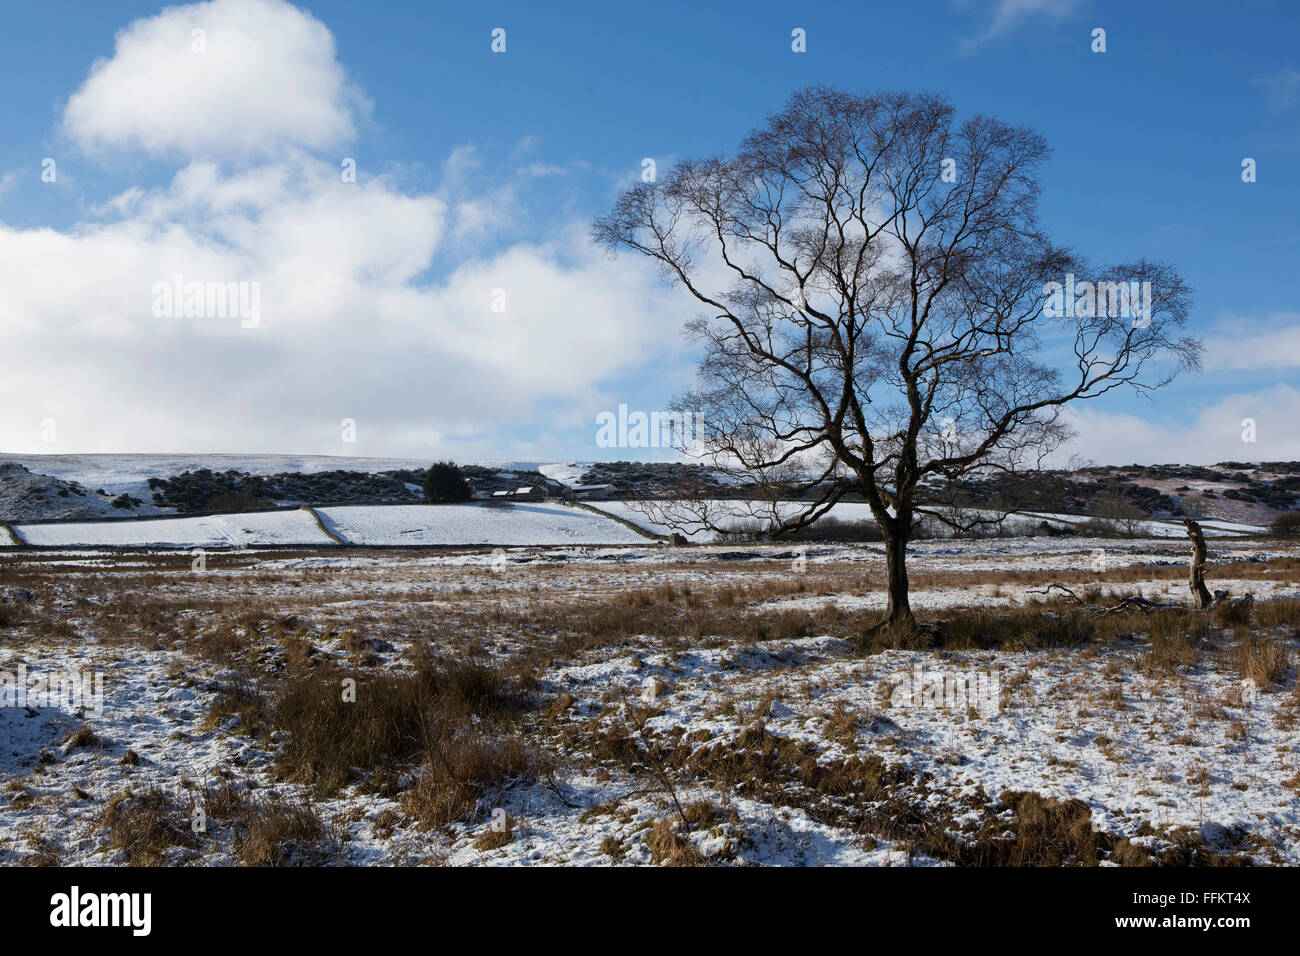 A bare tree in a field at Upper Teesdale in County Durham, England. Snow dusts the field. - Stock Image